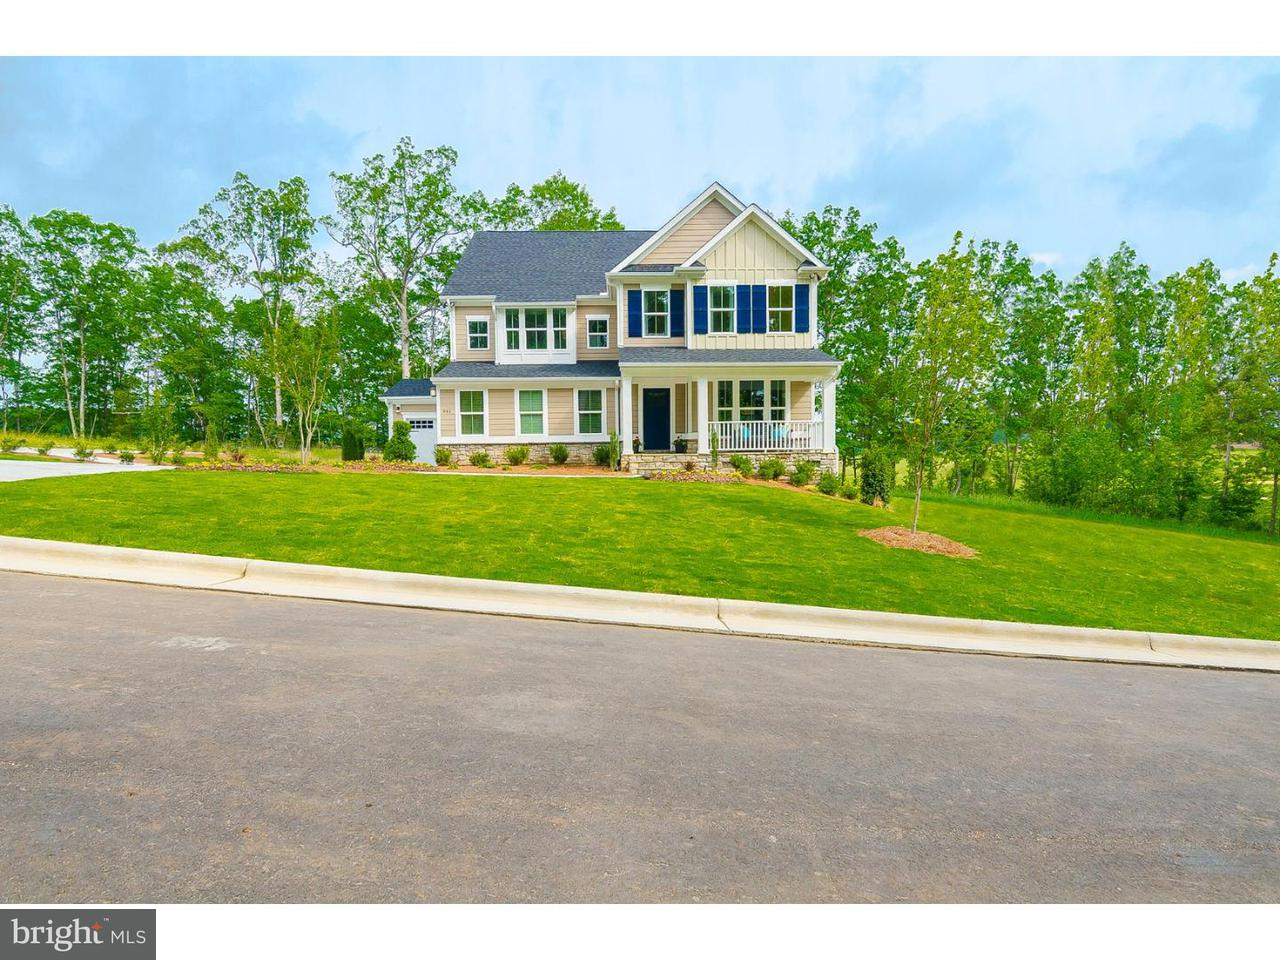 Single Family Home for Sale at 1603 RONAN WAY Romansville, Pennsylvania 19320 United States